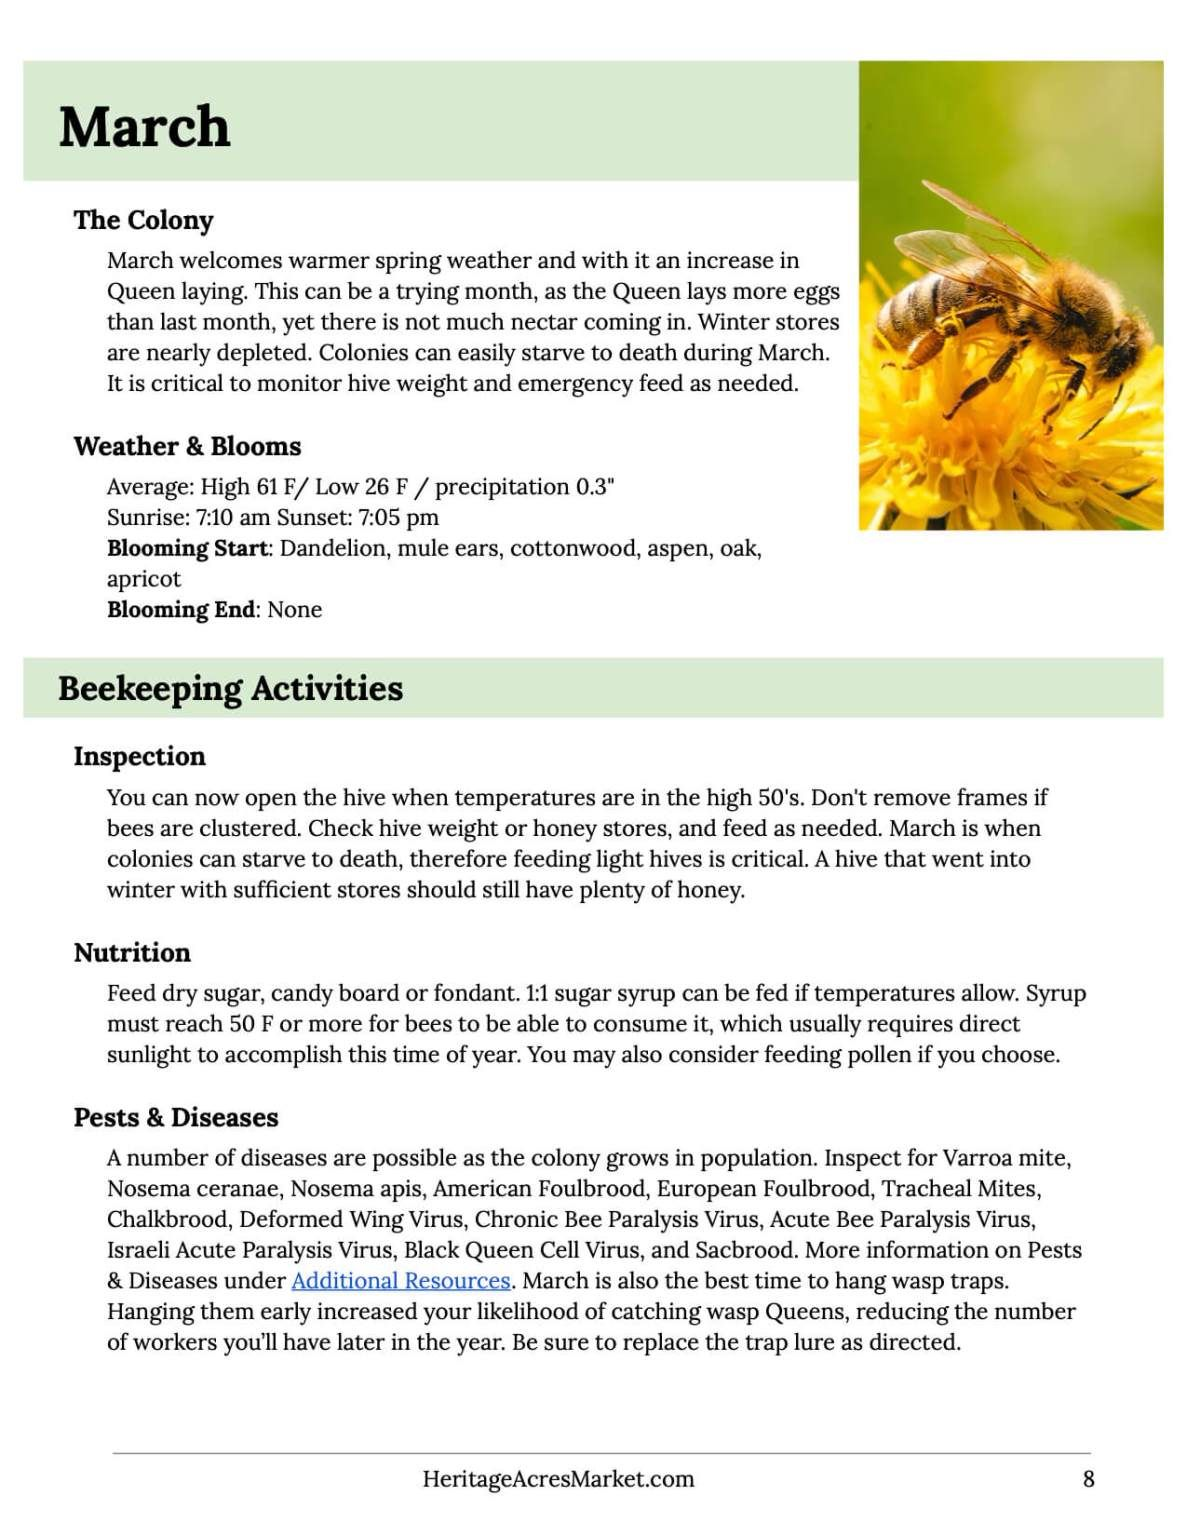 Free Insurance For Honey Bees Spring Weather Warm Spring Bee